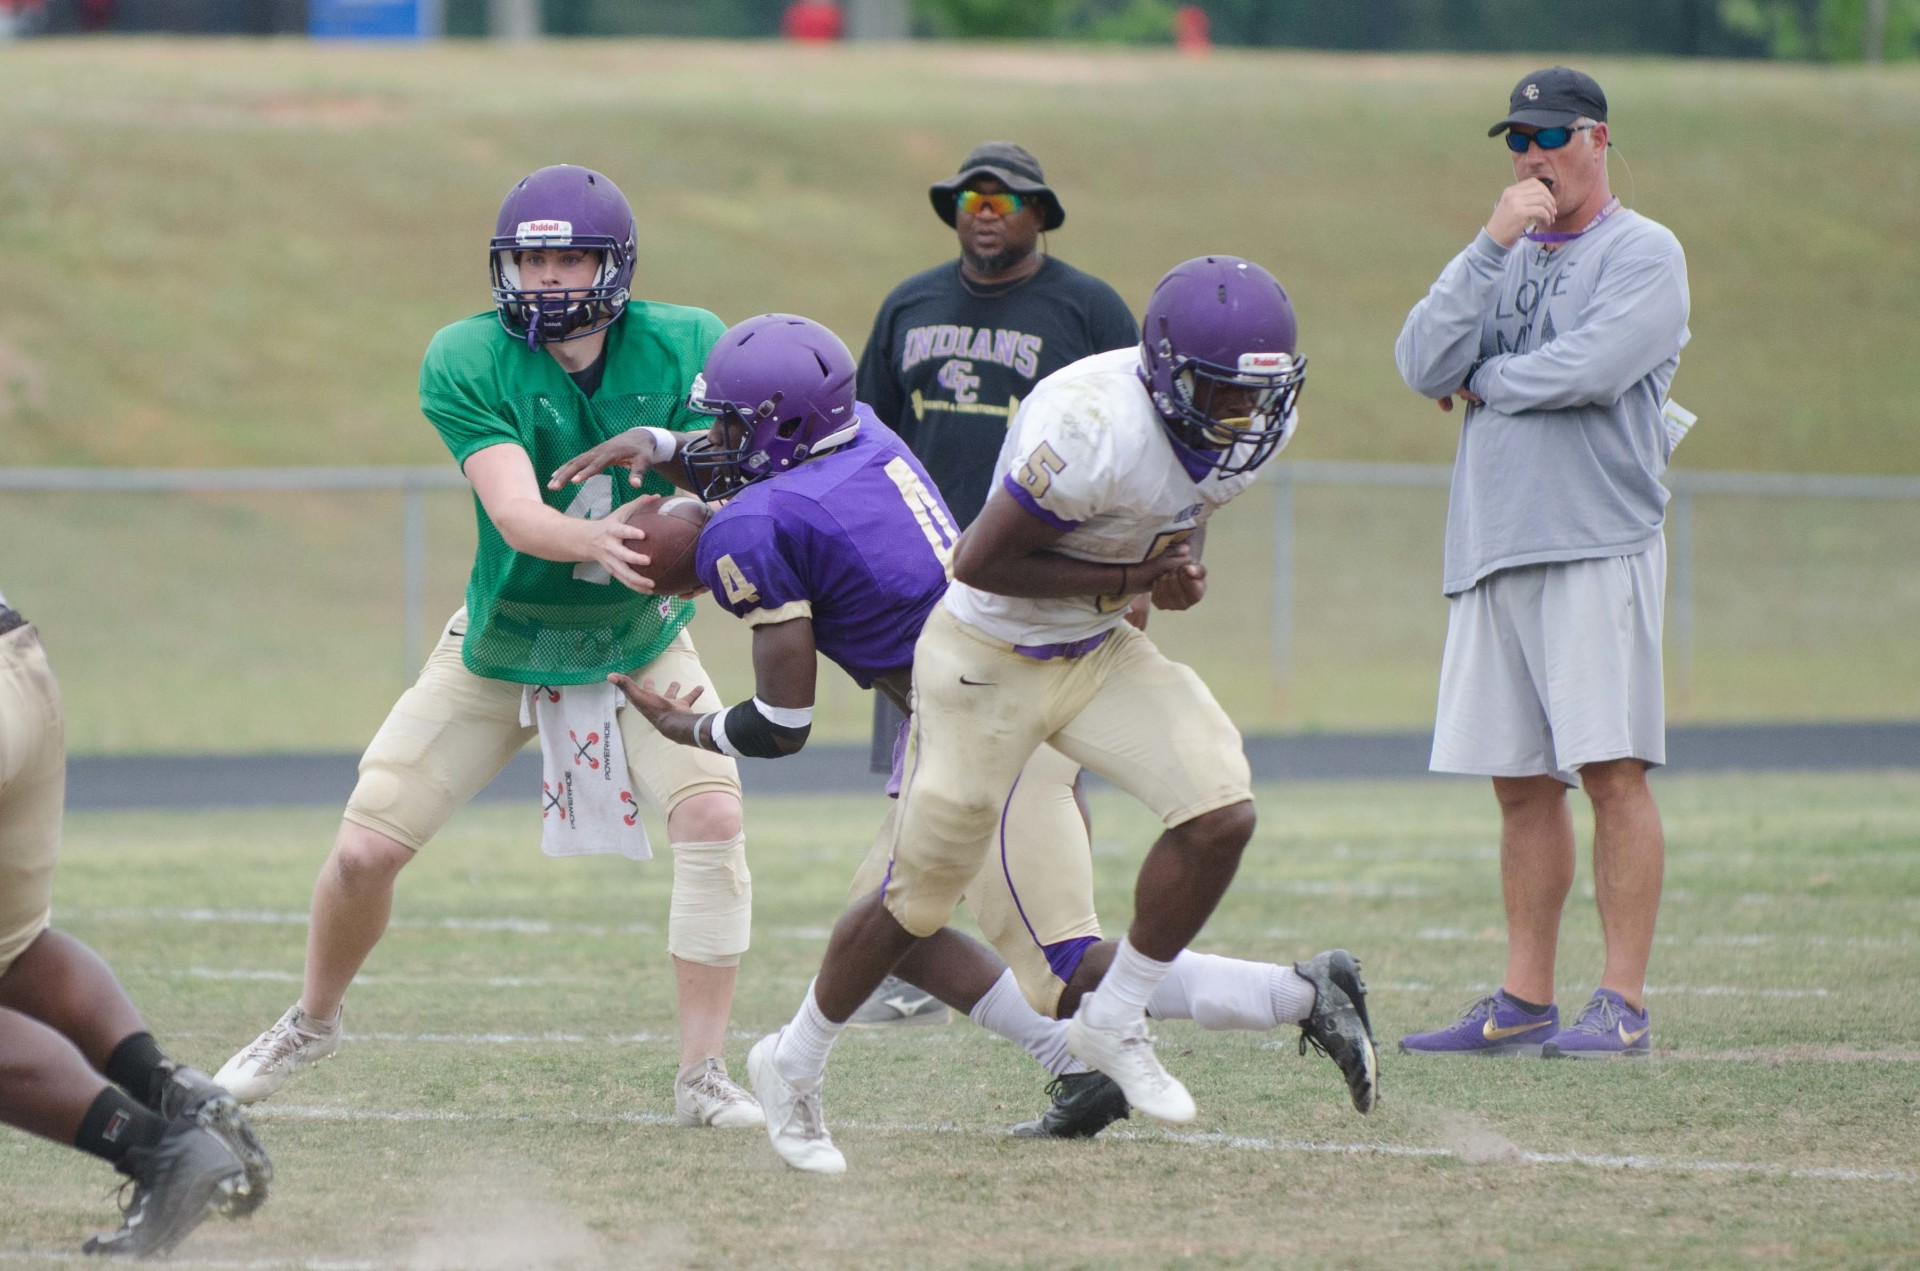 SPRING FOOTBALL: East Coweta continues to 'buy in' under Small during offseason, spring practice